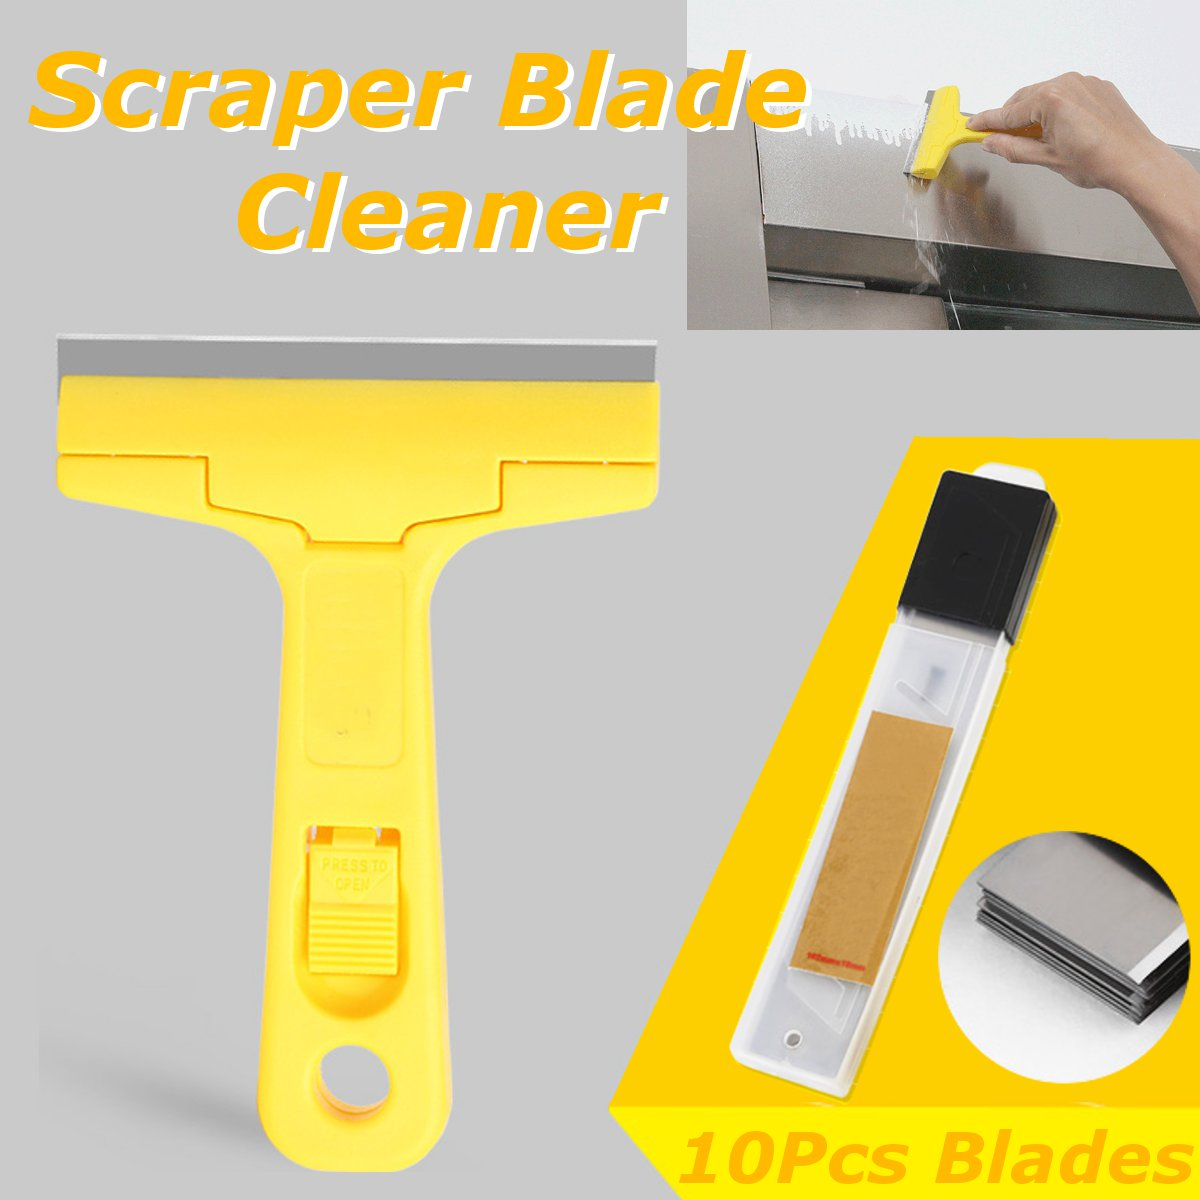 Aquarium Glass Scraper Blade Cleaner with 10Pcs Blades